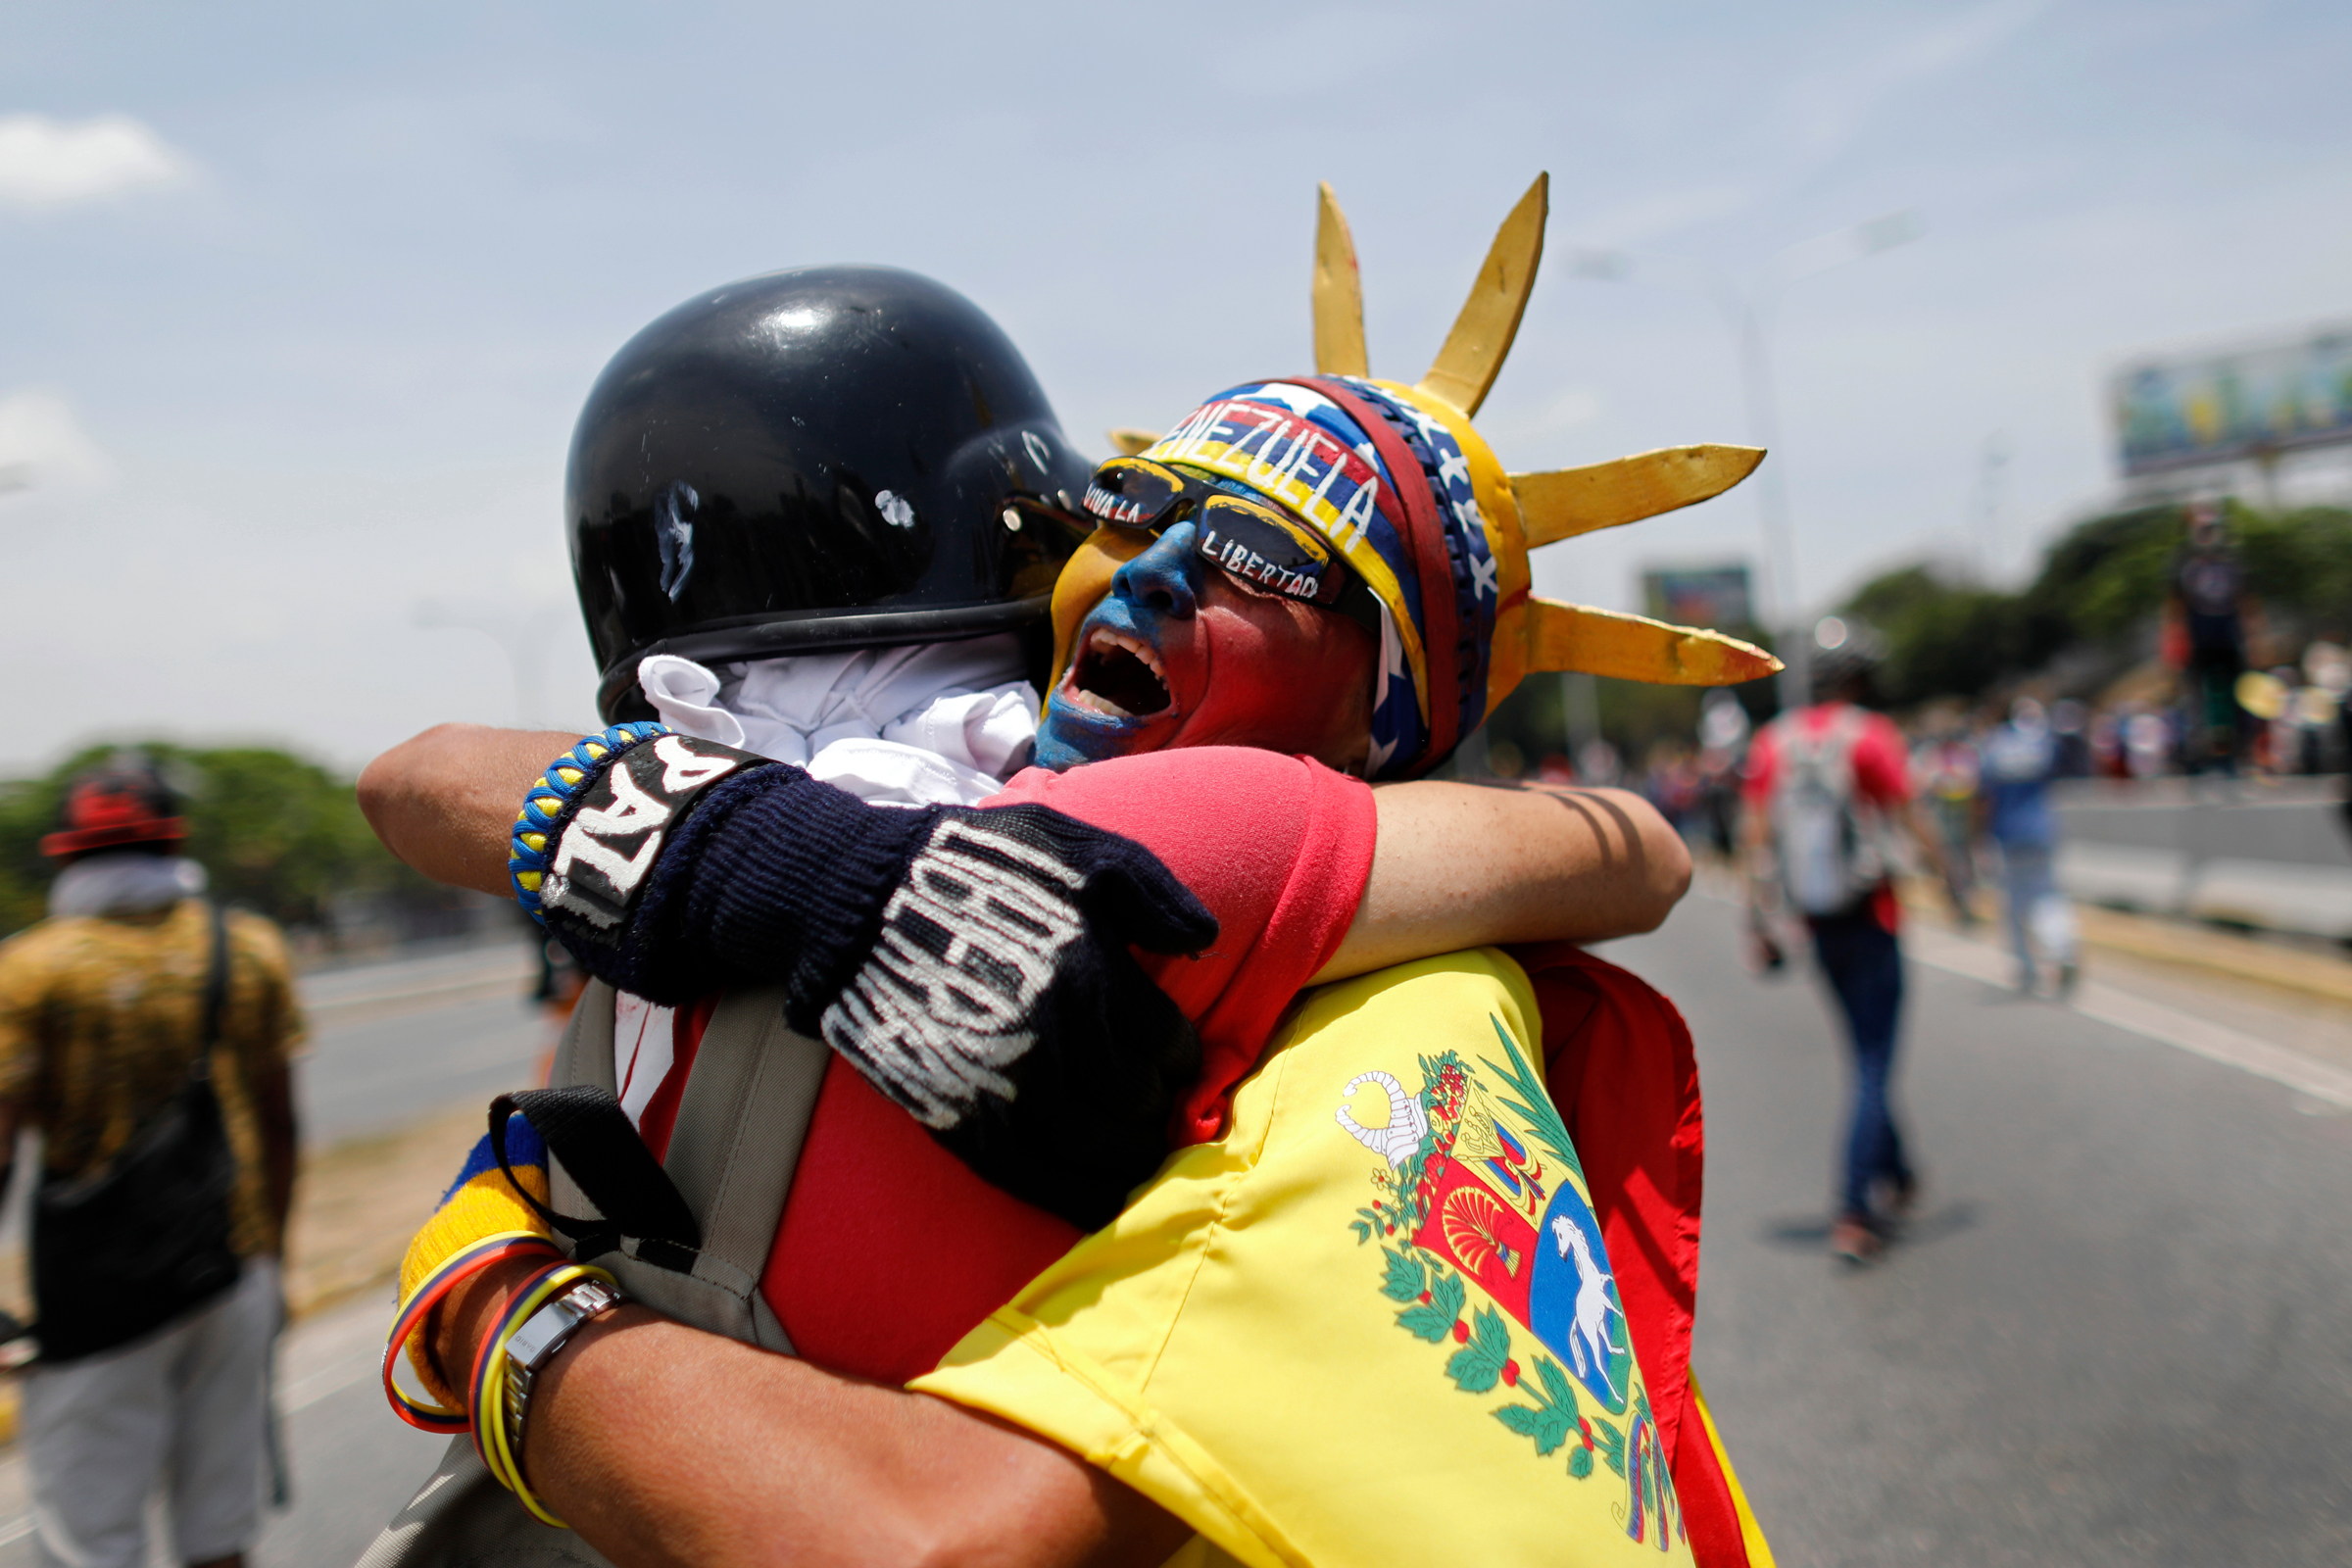 An anti-government protester dressed as Lady Liberty, wearing the colors of Venezuela's flag, hugs a fellow protester during a demonstration near La Carlota airbase in Caracas, Venezuela, . Opposition leader Juan Guaidó is calling for Venezuelans to fill streets around the country Wednesday to demand President Nicolás Maduro's ouster. Maduro is also calling for his supporters to rallyPolitical Crisis, Caracas, Venezuela - 01 May 2019